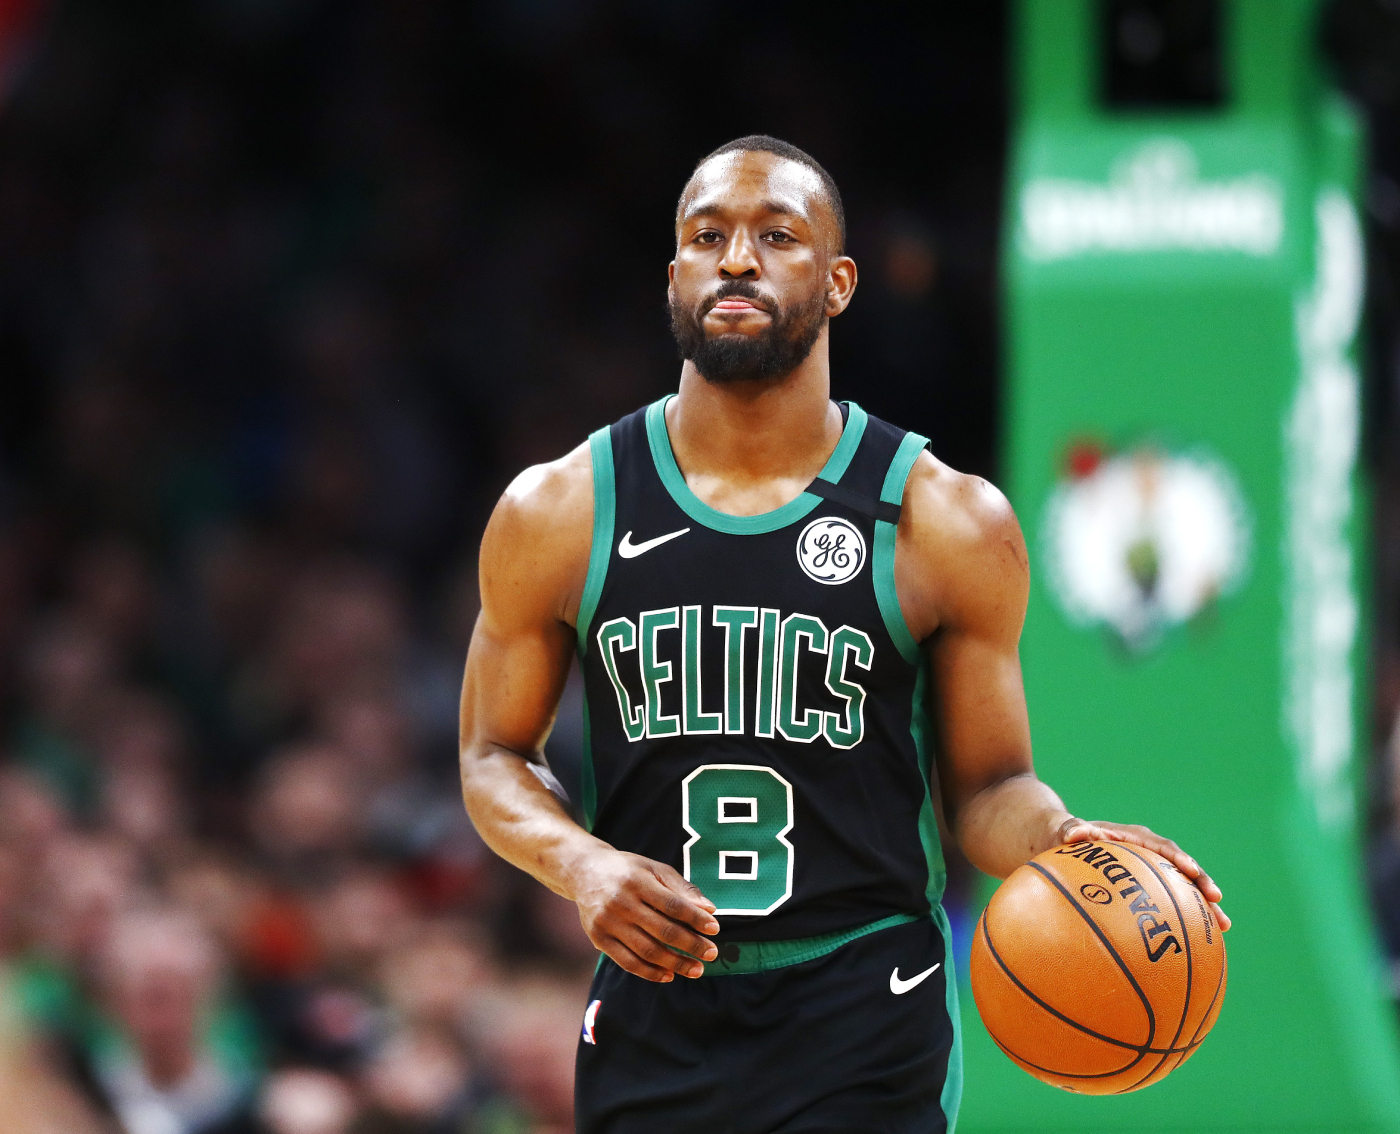 Kemba Walker is a very talented basketball player for the Boston Celtics. However, he was actually a dancer prior to entering the NBA.